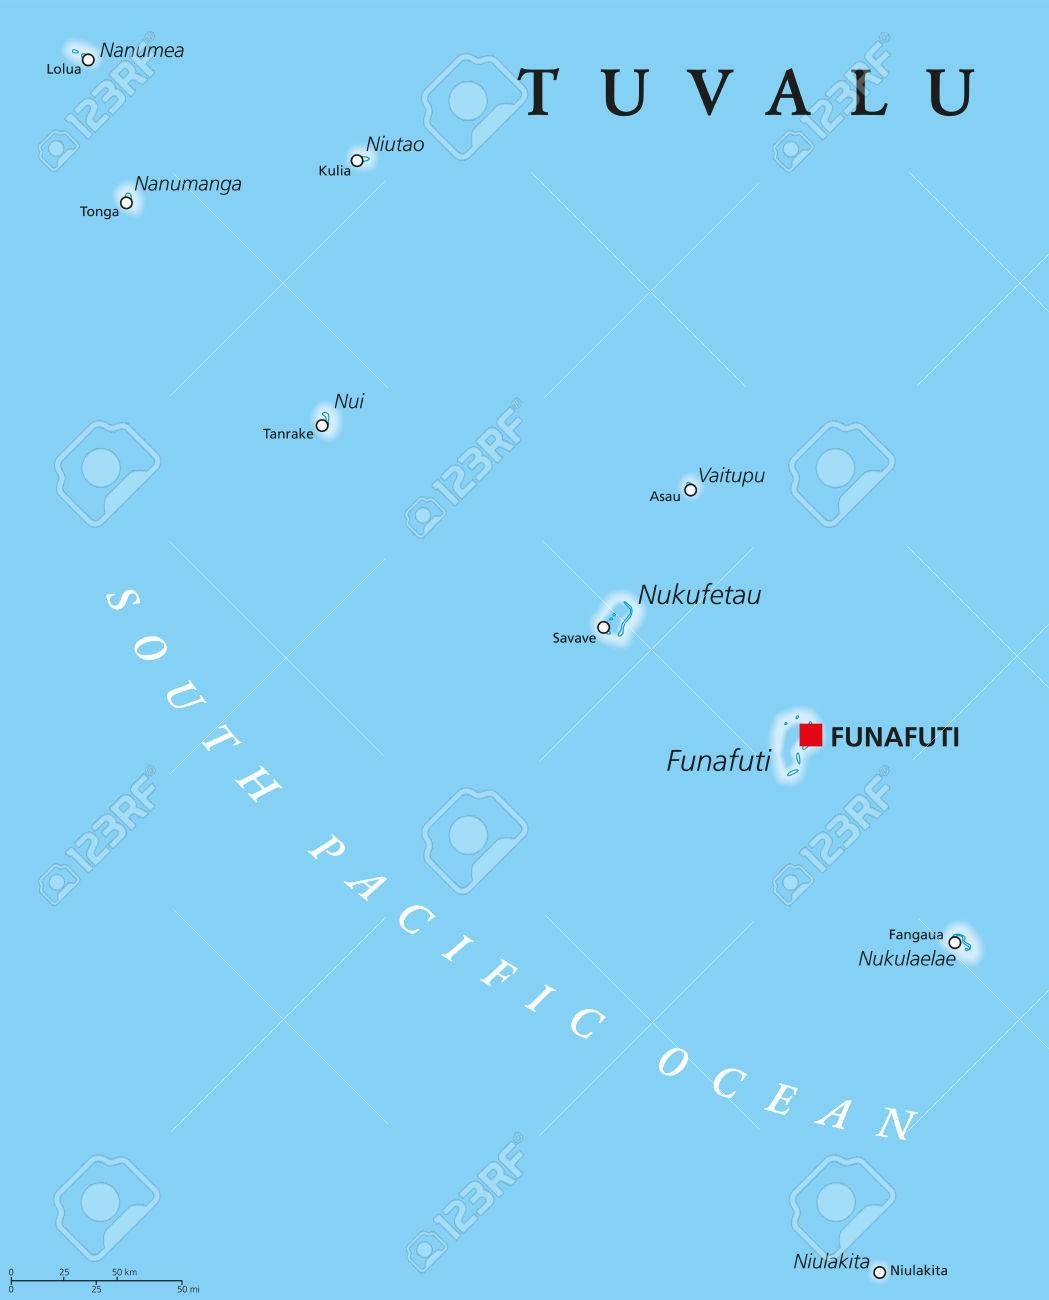 Tuvalu Political Map With Capital Funafuti And Important Villages